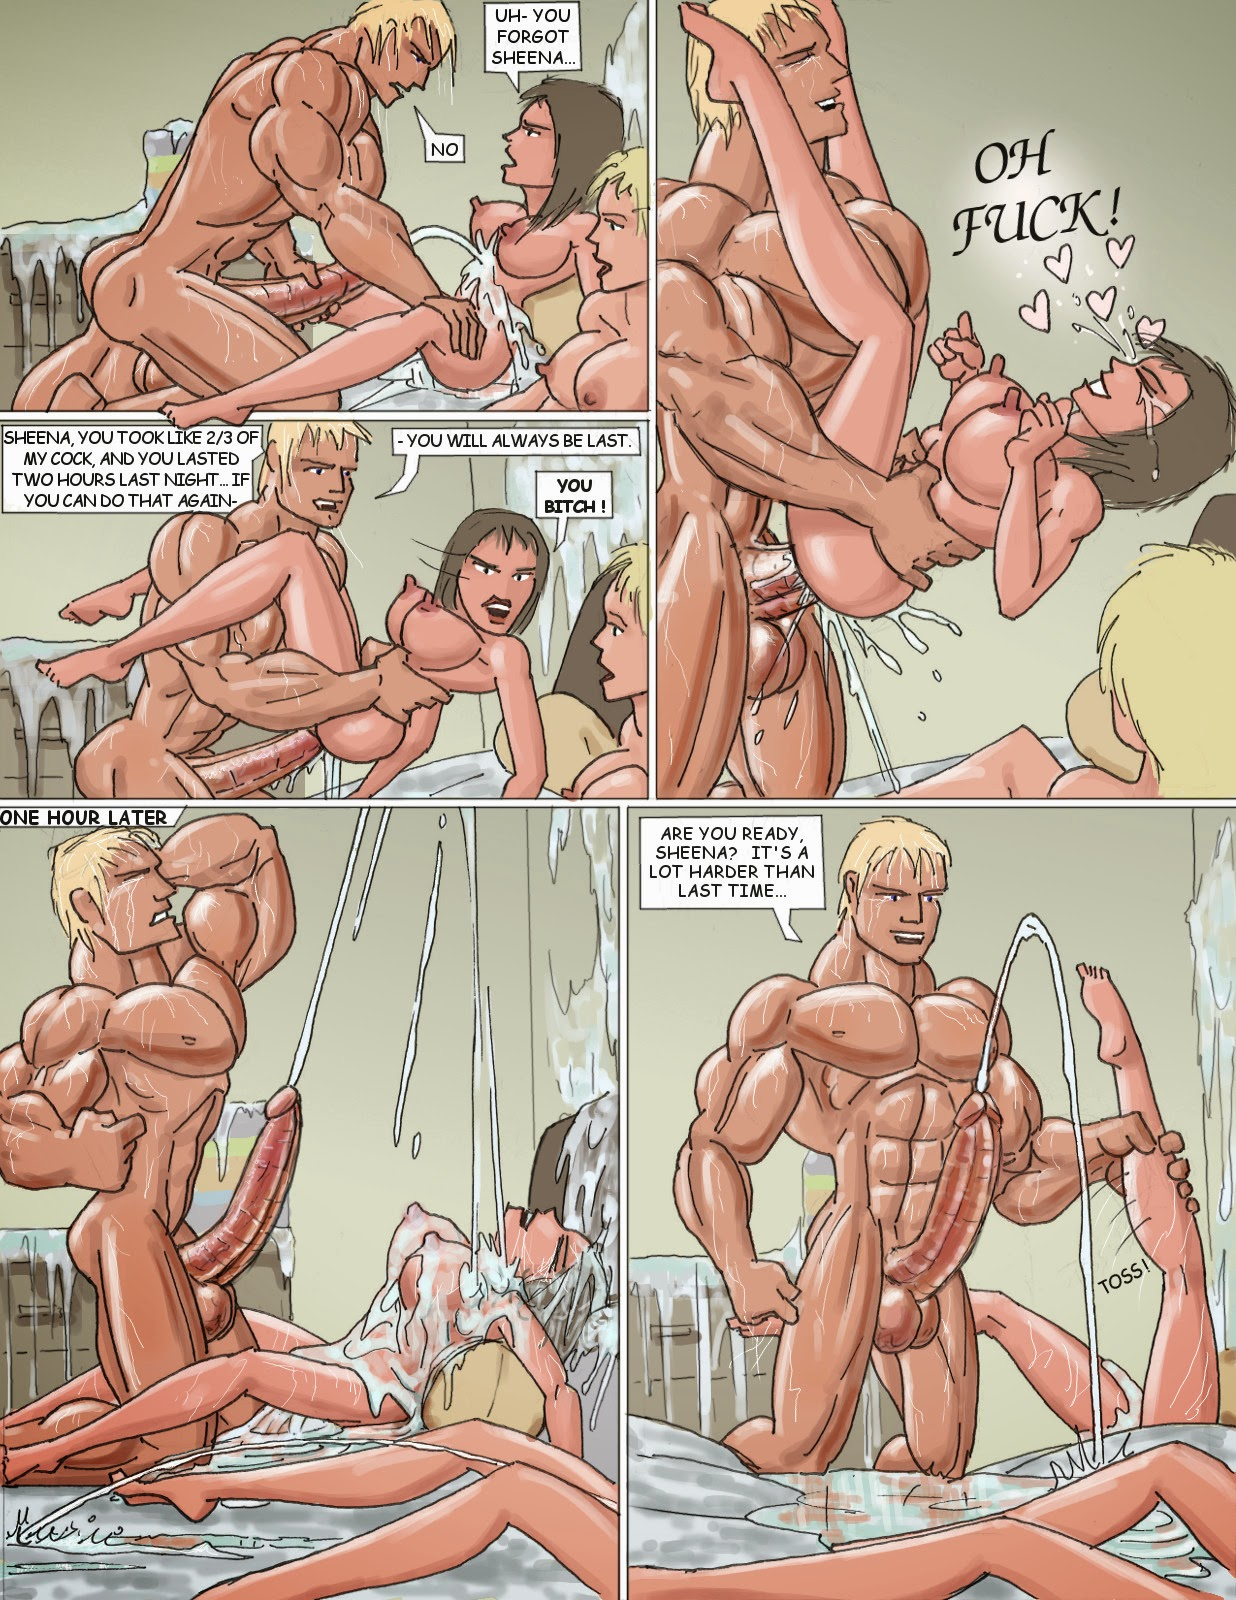 I am ready to give my first handjob joi - 1 part 1